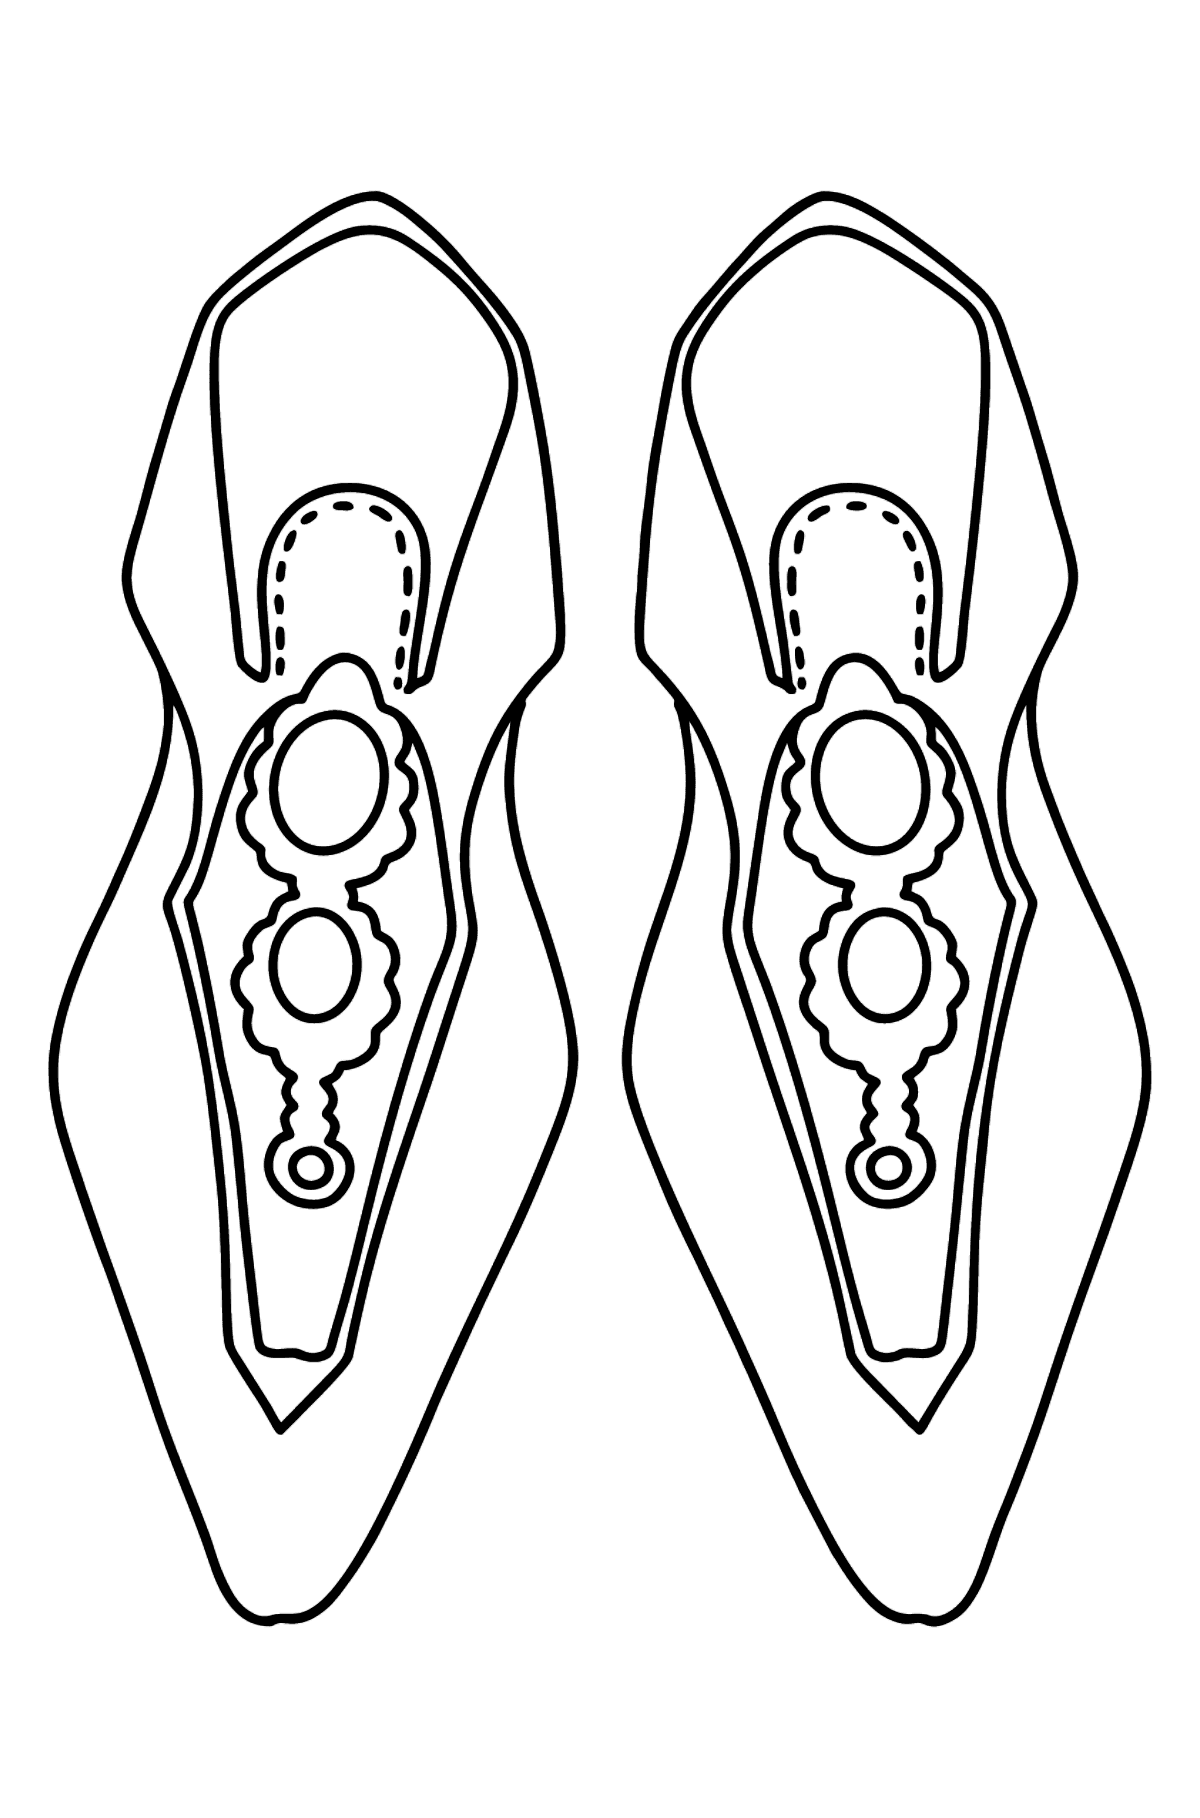 Shoes coloring page - Coloring Pages for Kids